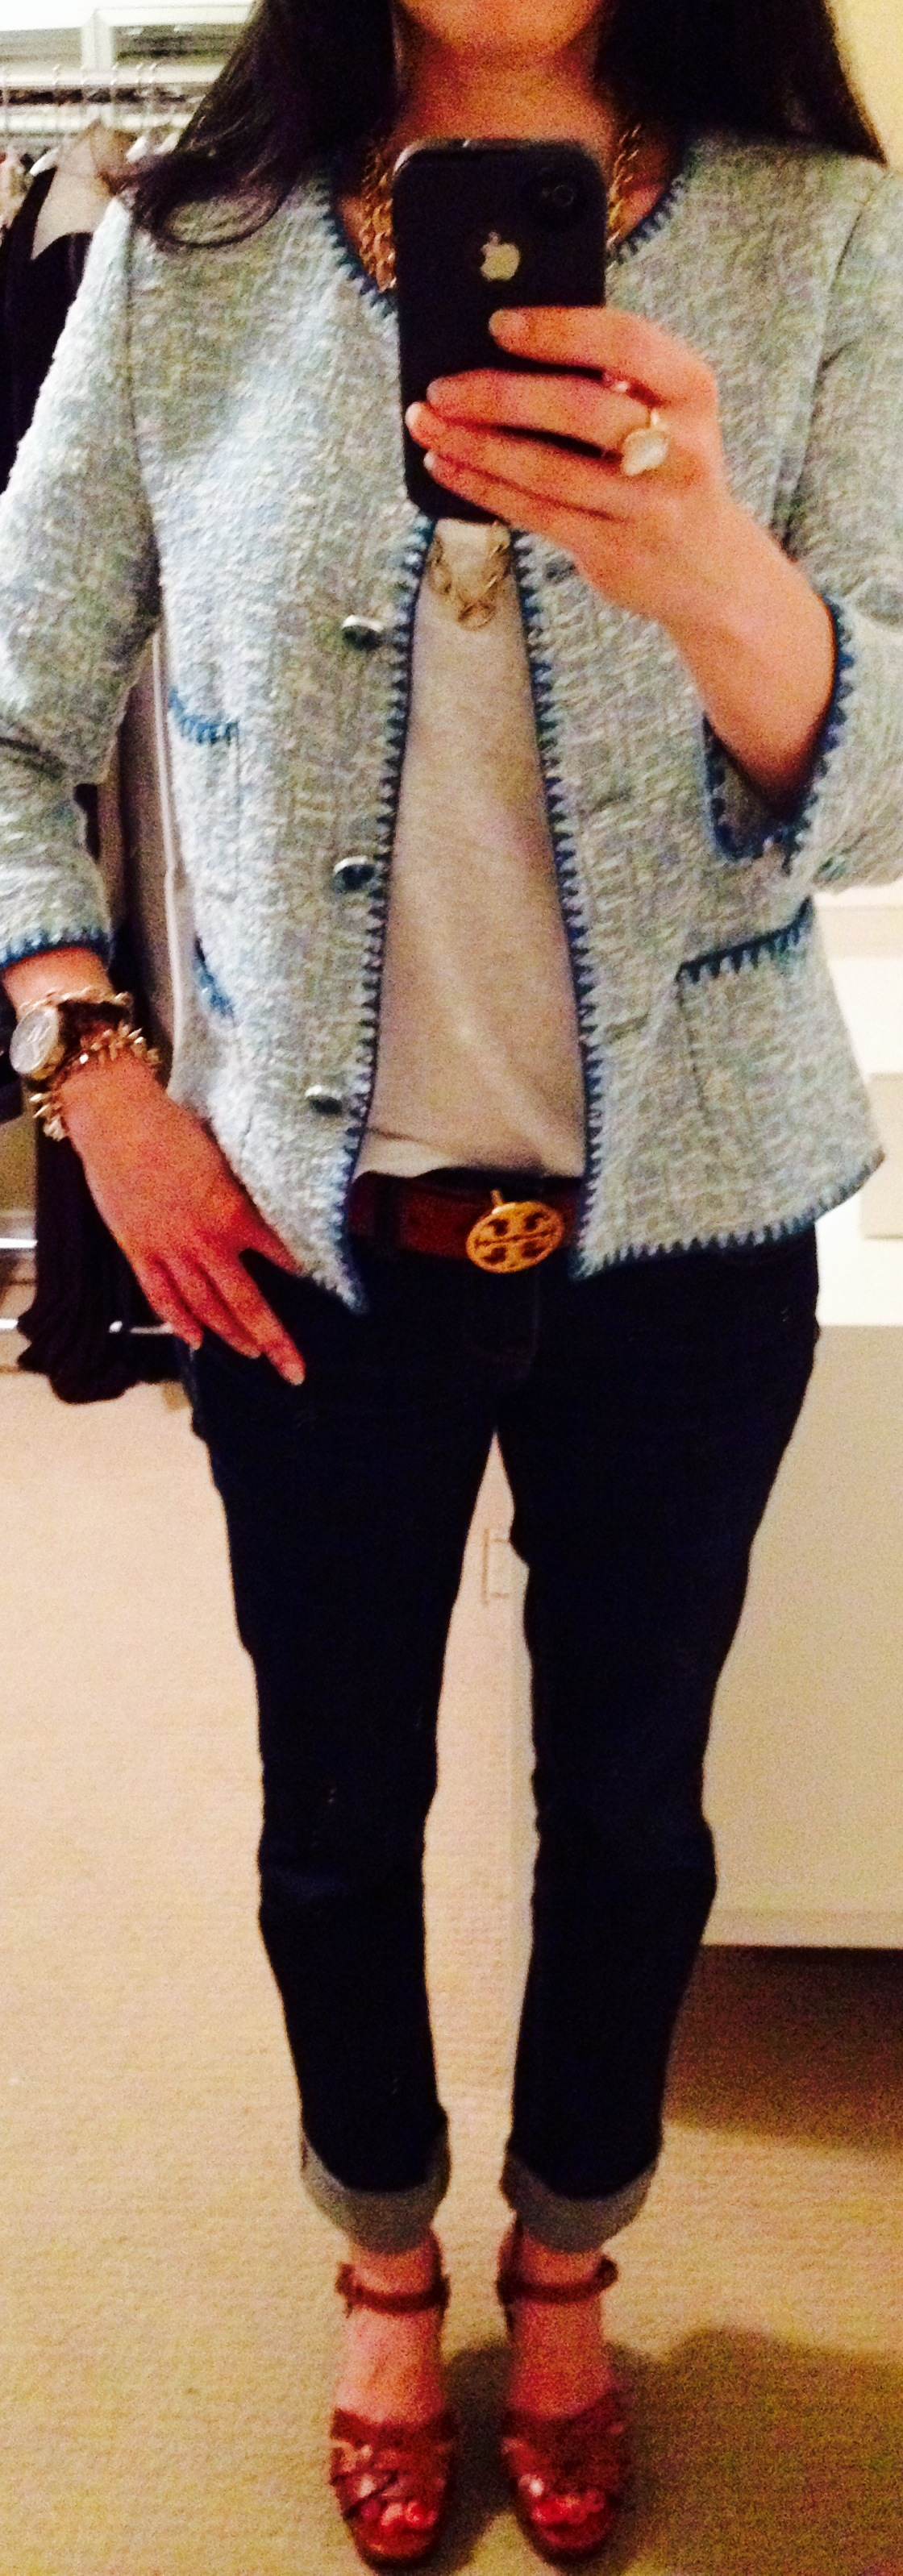 July 17, Textured Jacket with Tory Burch Belt